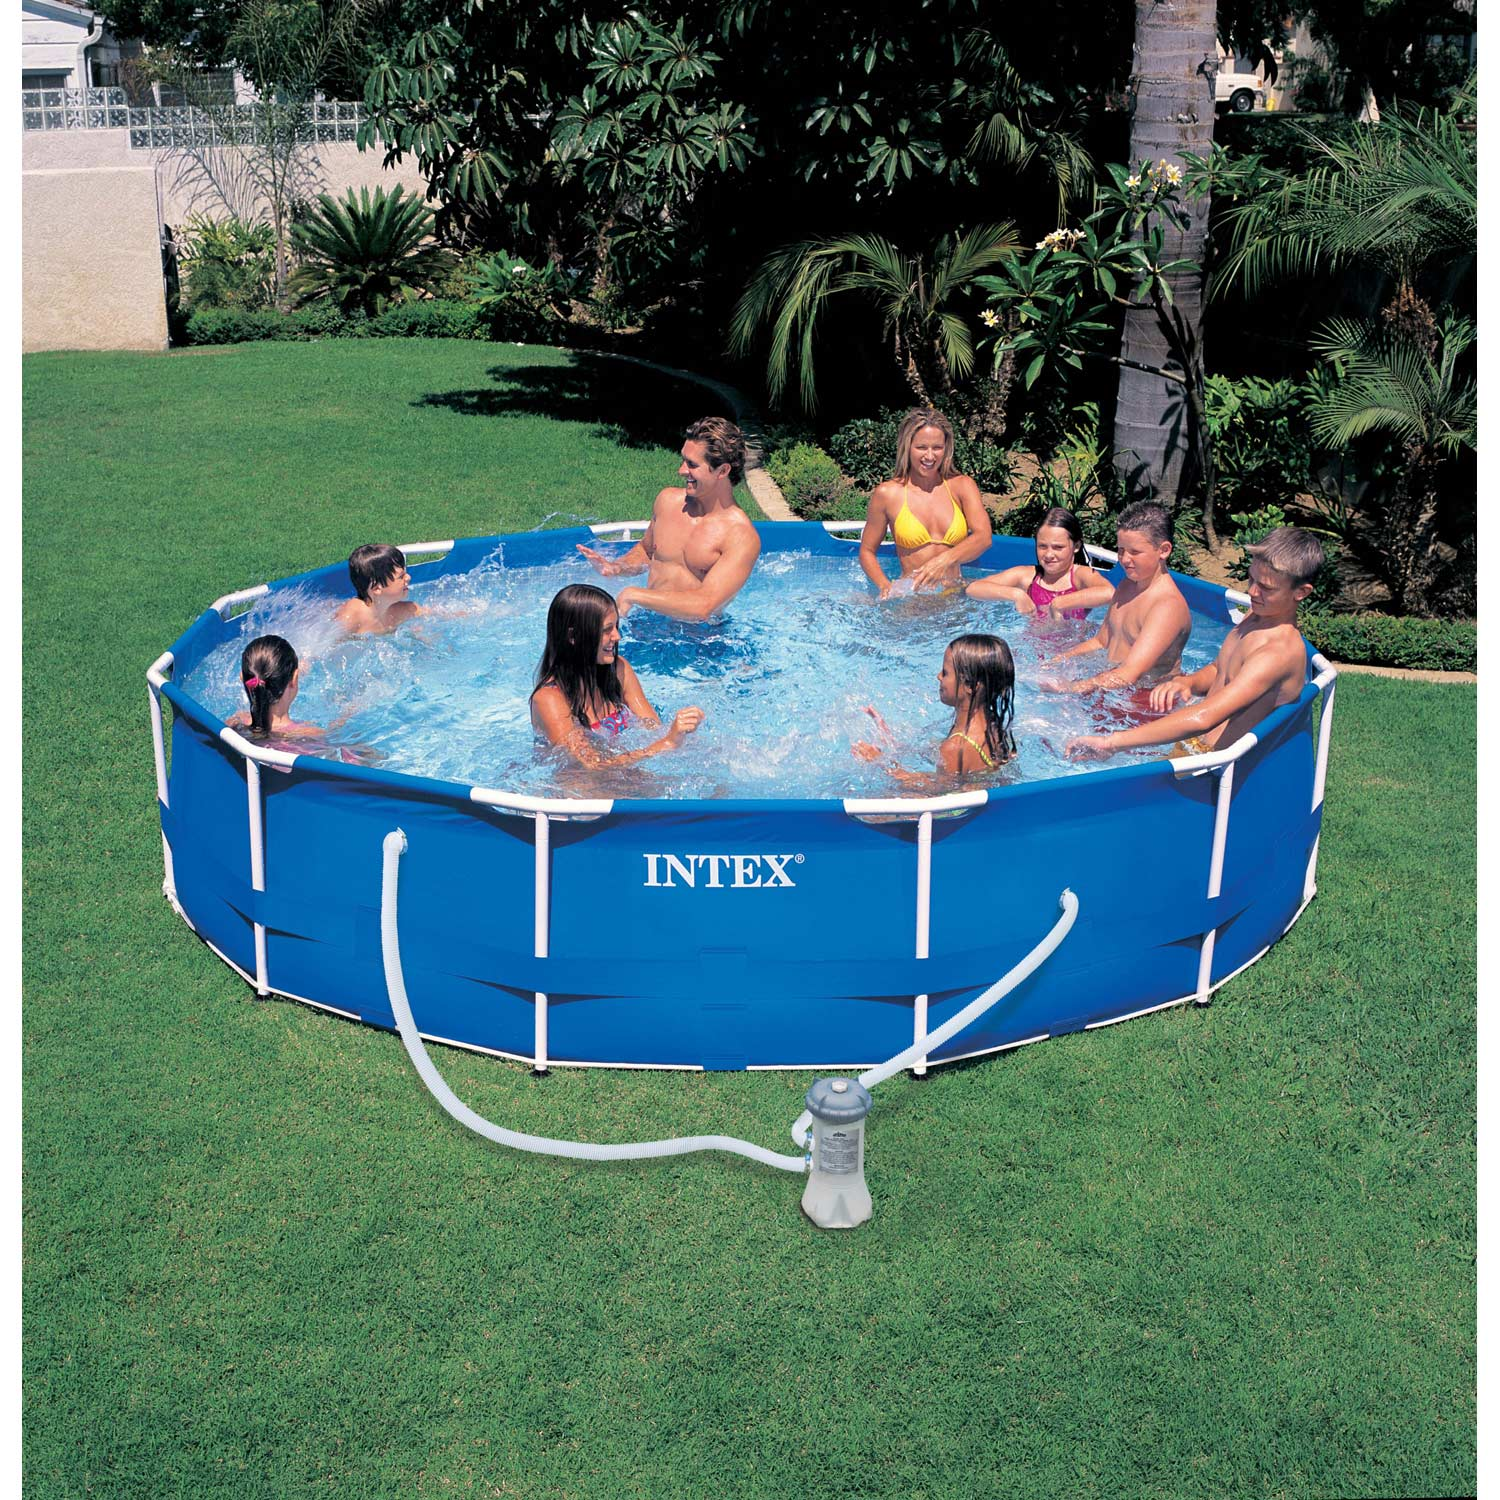 Piscine hors sol autoportante tubulaire metal frame intex for Pediluve piscine hors sol